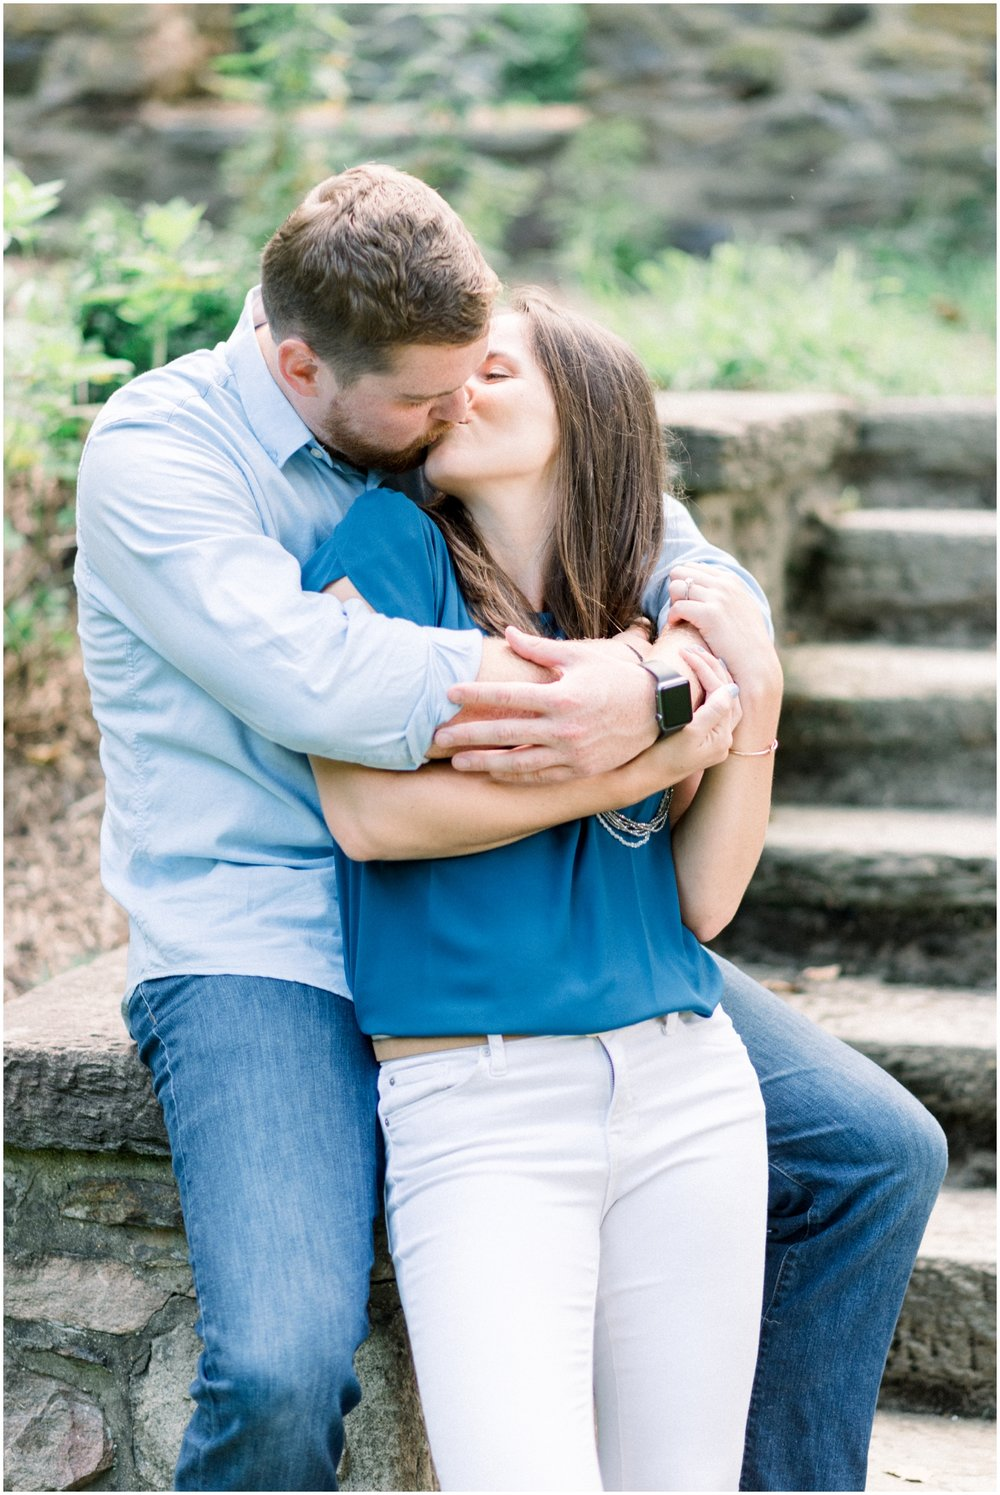 Summer Engagement Session at Hunting Hill Mansion - Krista Brackin Photography_0034.jpg